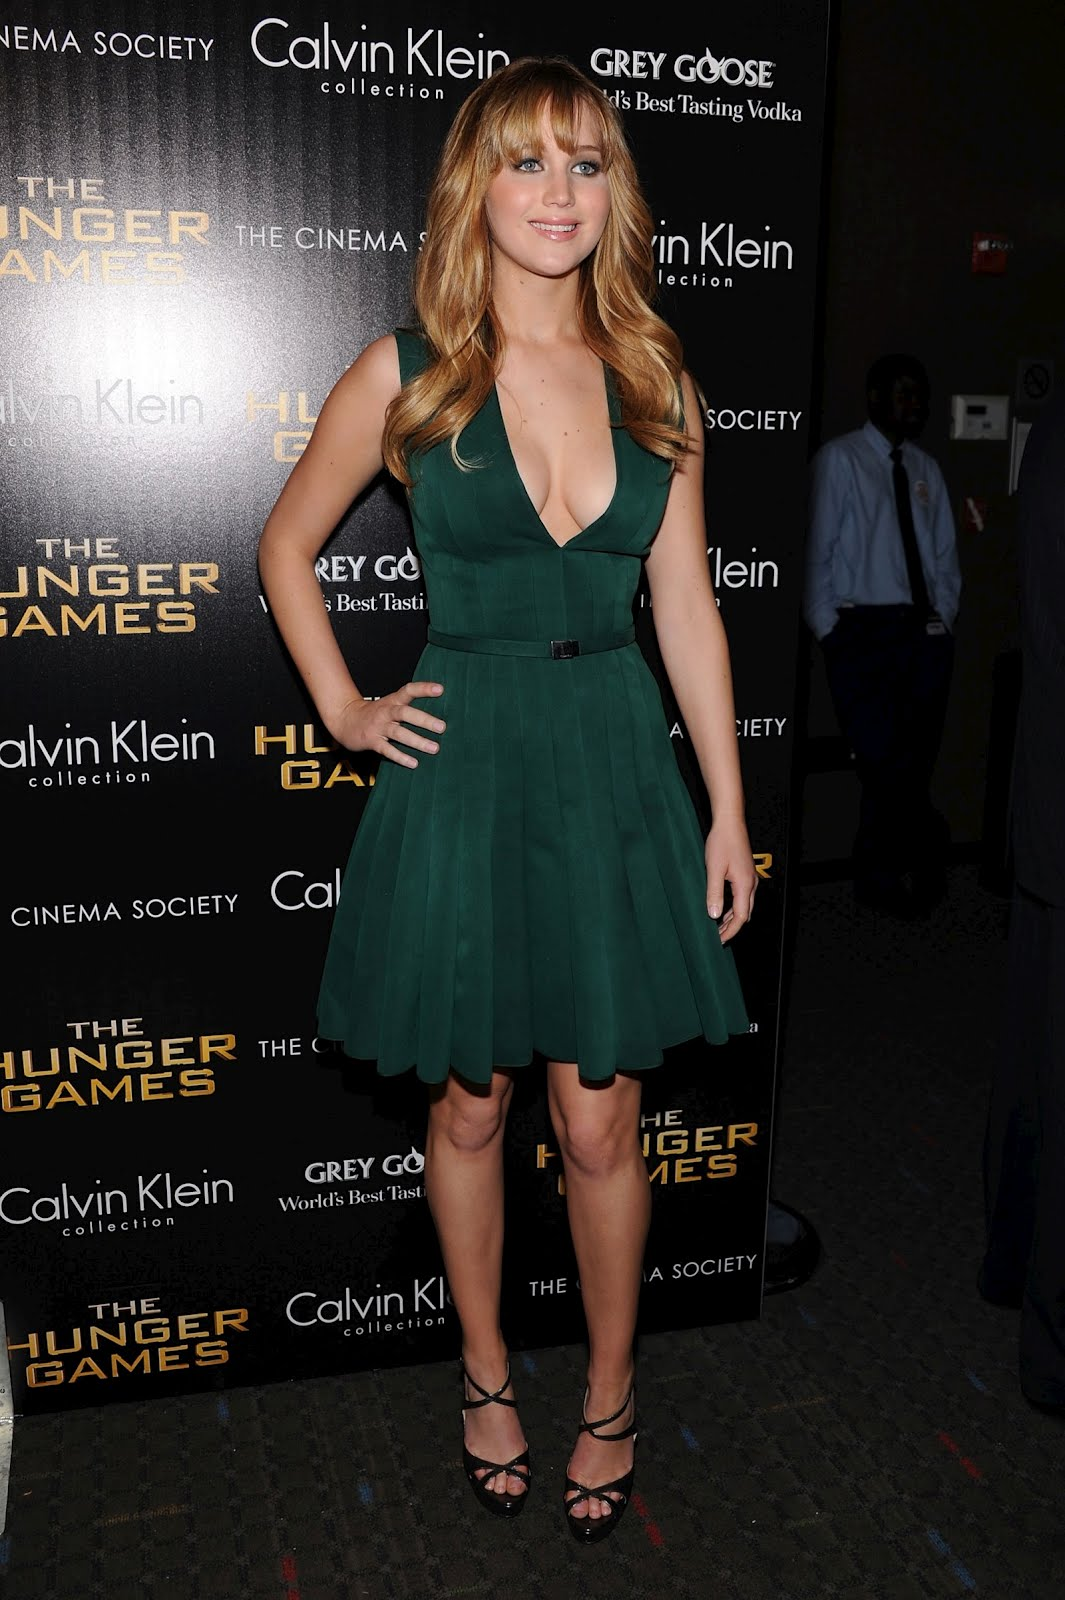 http://1.bp.blogspot.com/-ya2jcNchjaE/T2o8sOvo0BI/AAAAAAAAPgg/AVXATQPByk4/s1600/Jennifer_Lawrence_hollywood_beauty_picture_premiere_gree_dress.jpg